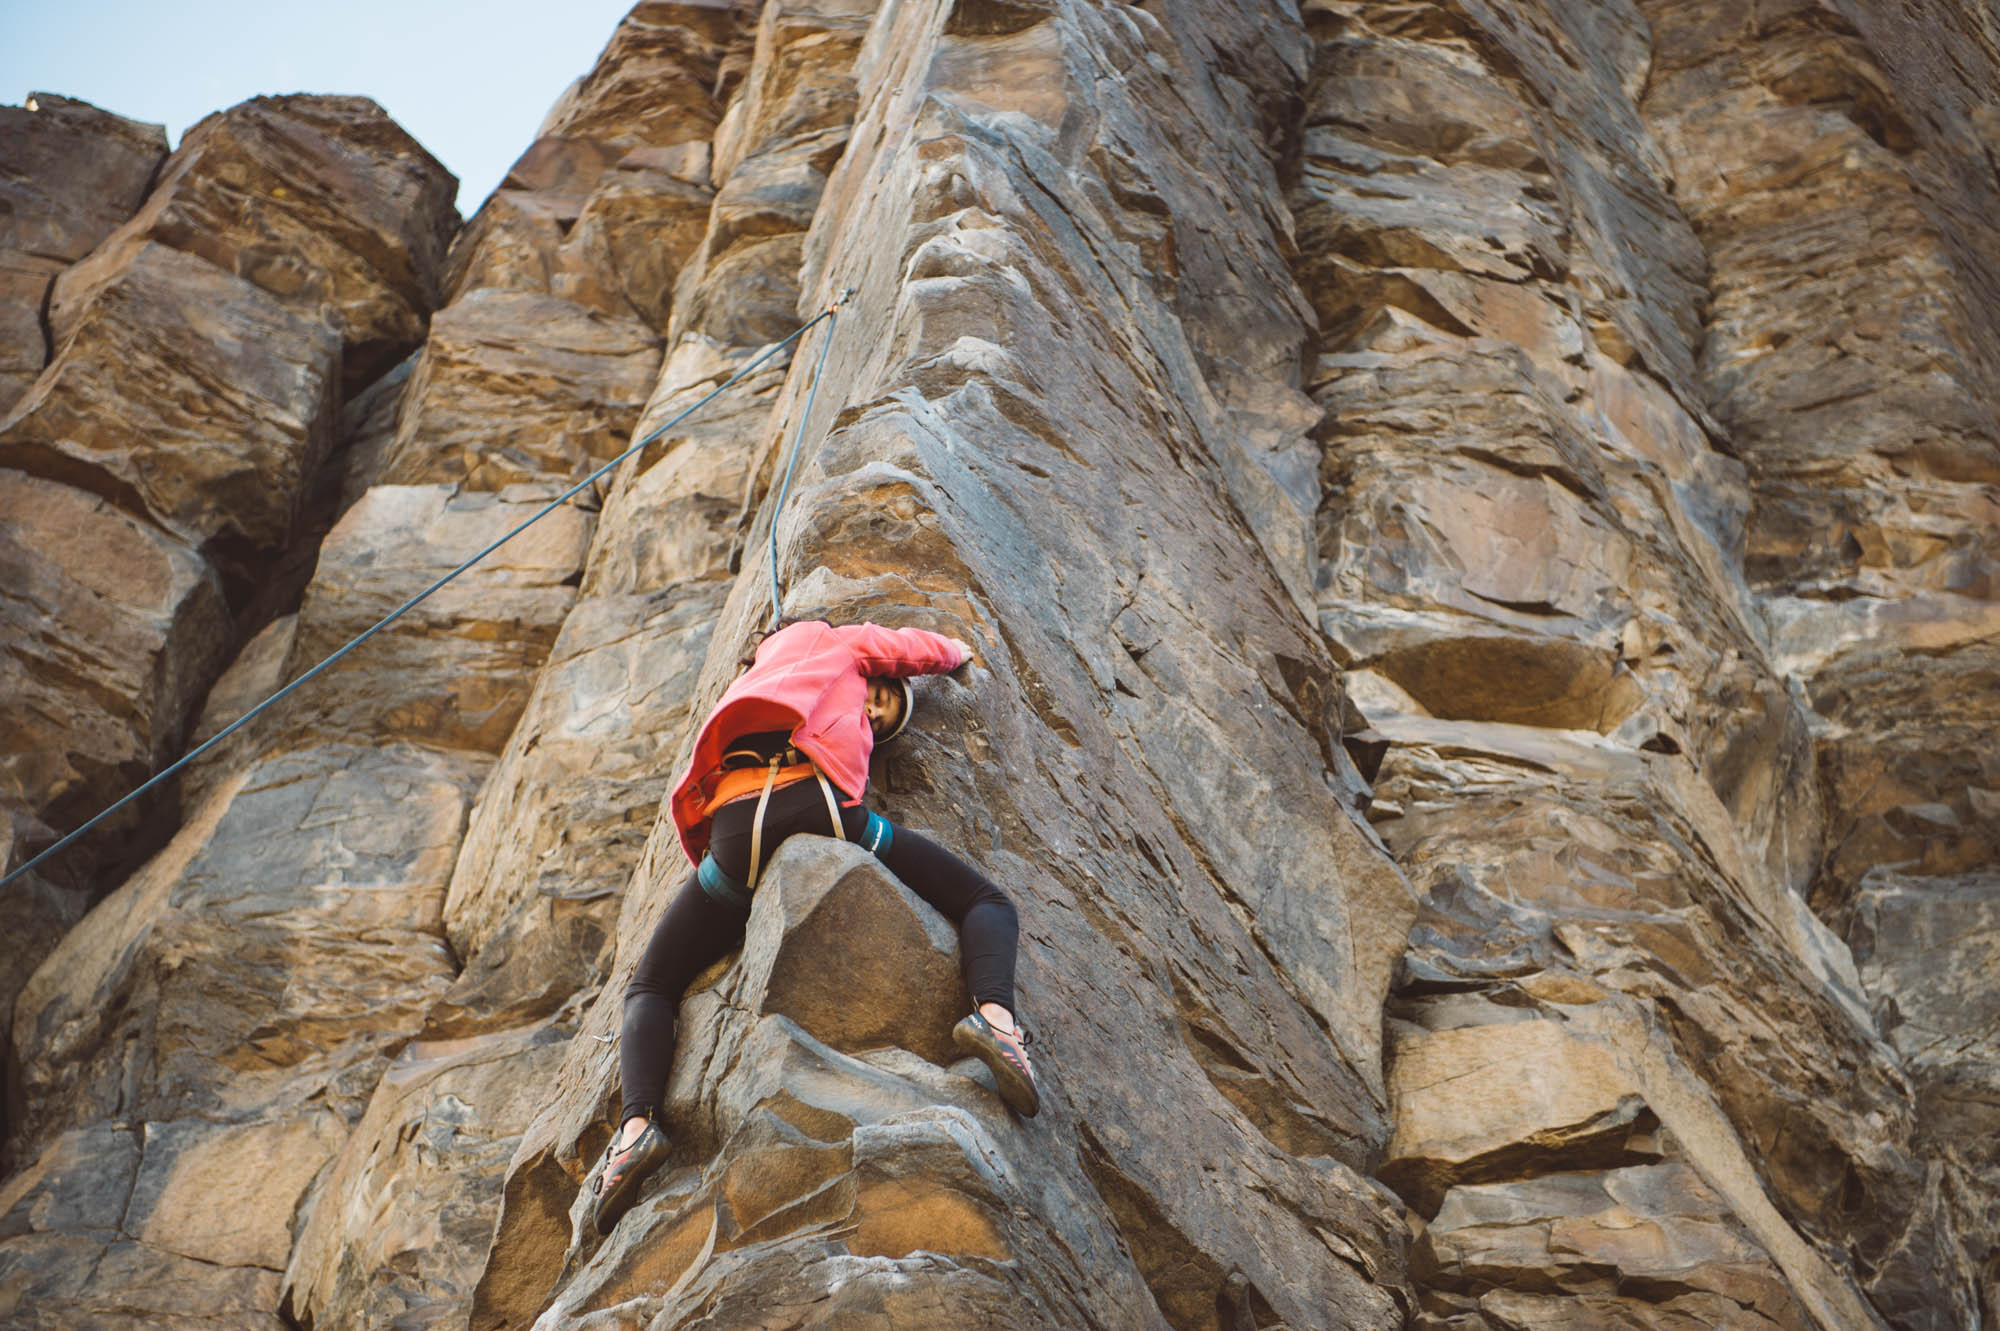 """Mara sitting on the """"saddle"""" of Ride 'em Cowboy (5.9+), one of the most popular route on this crag. There are always line ups here on the weekends!"""